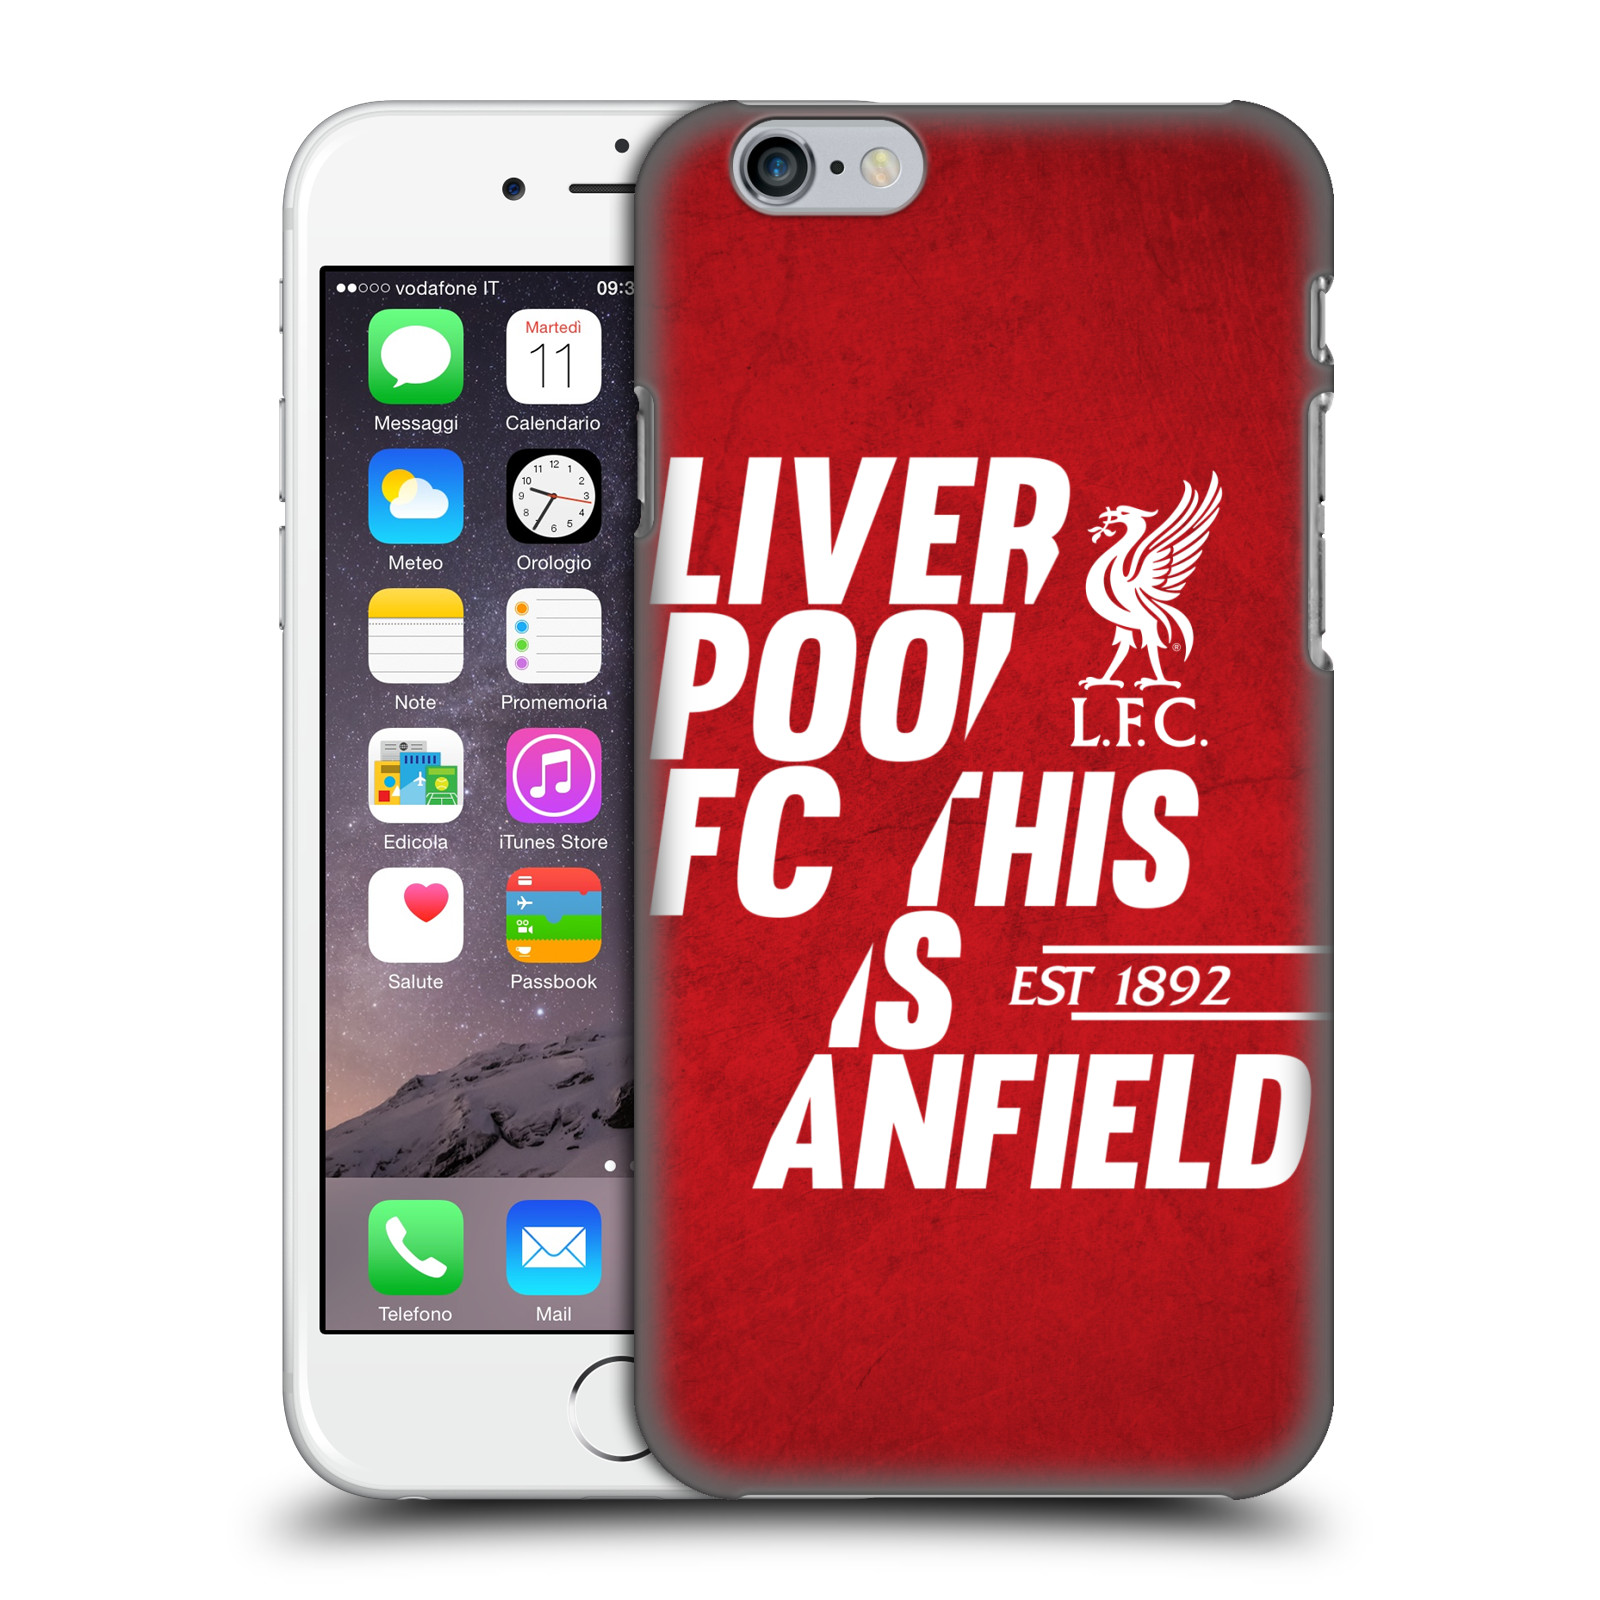 Liverpool FC LFC This Is Anfield-Red 4